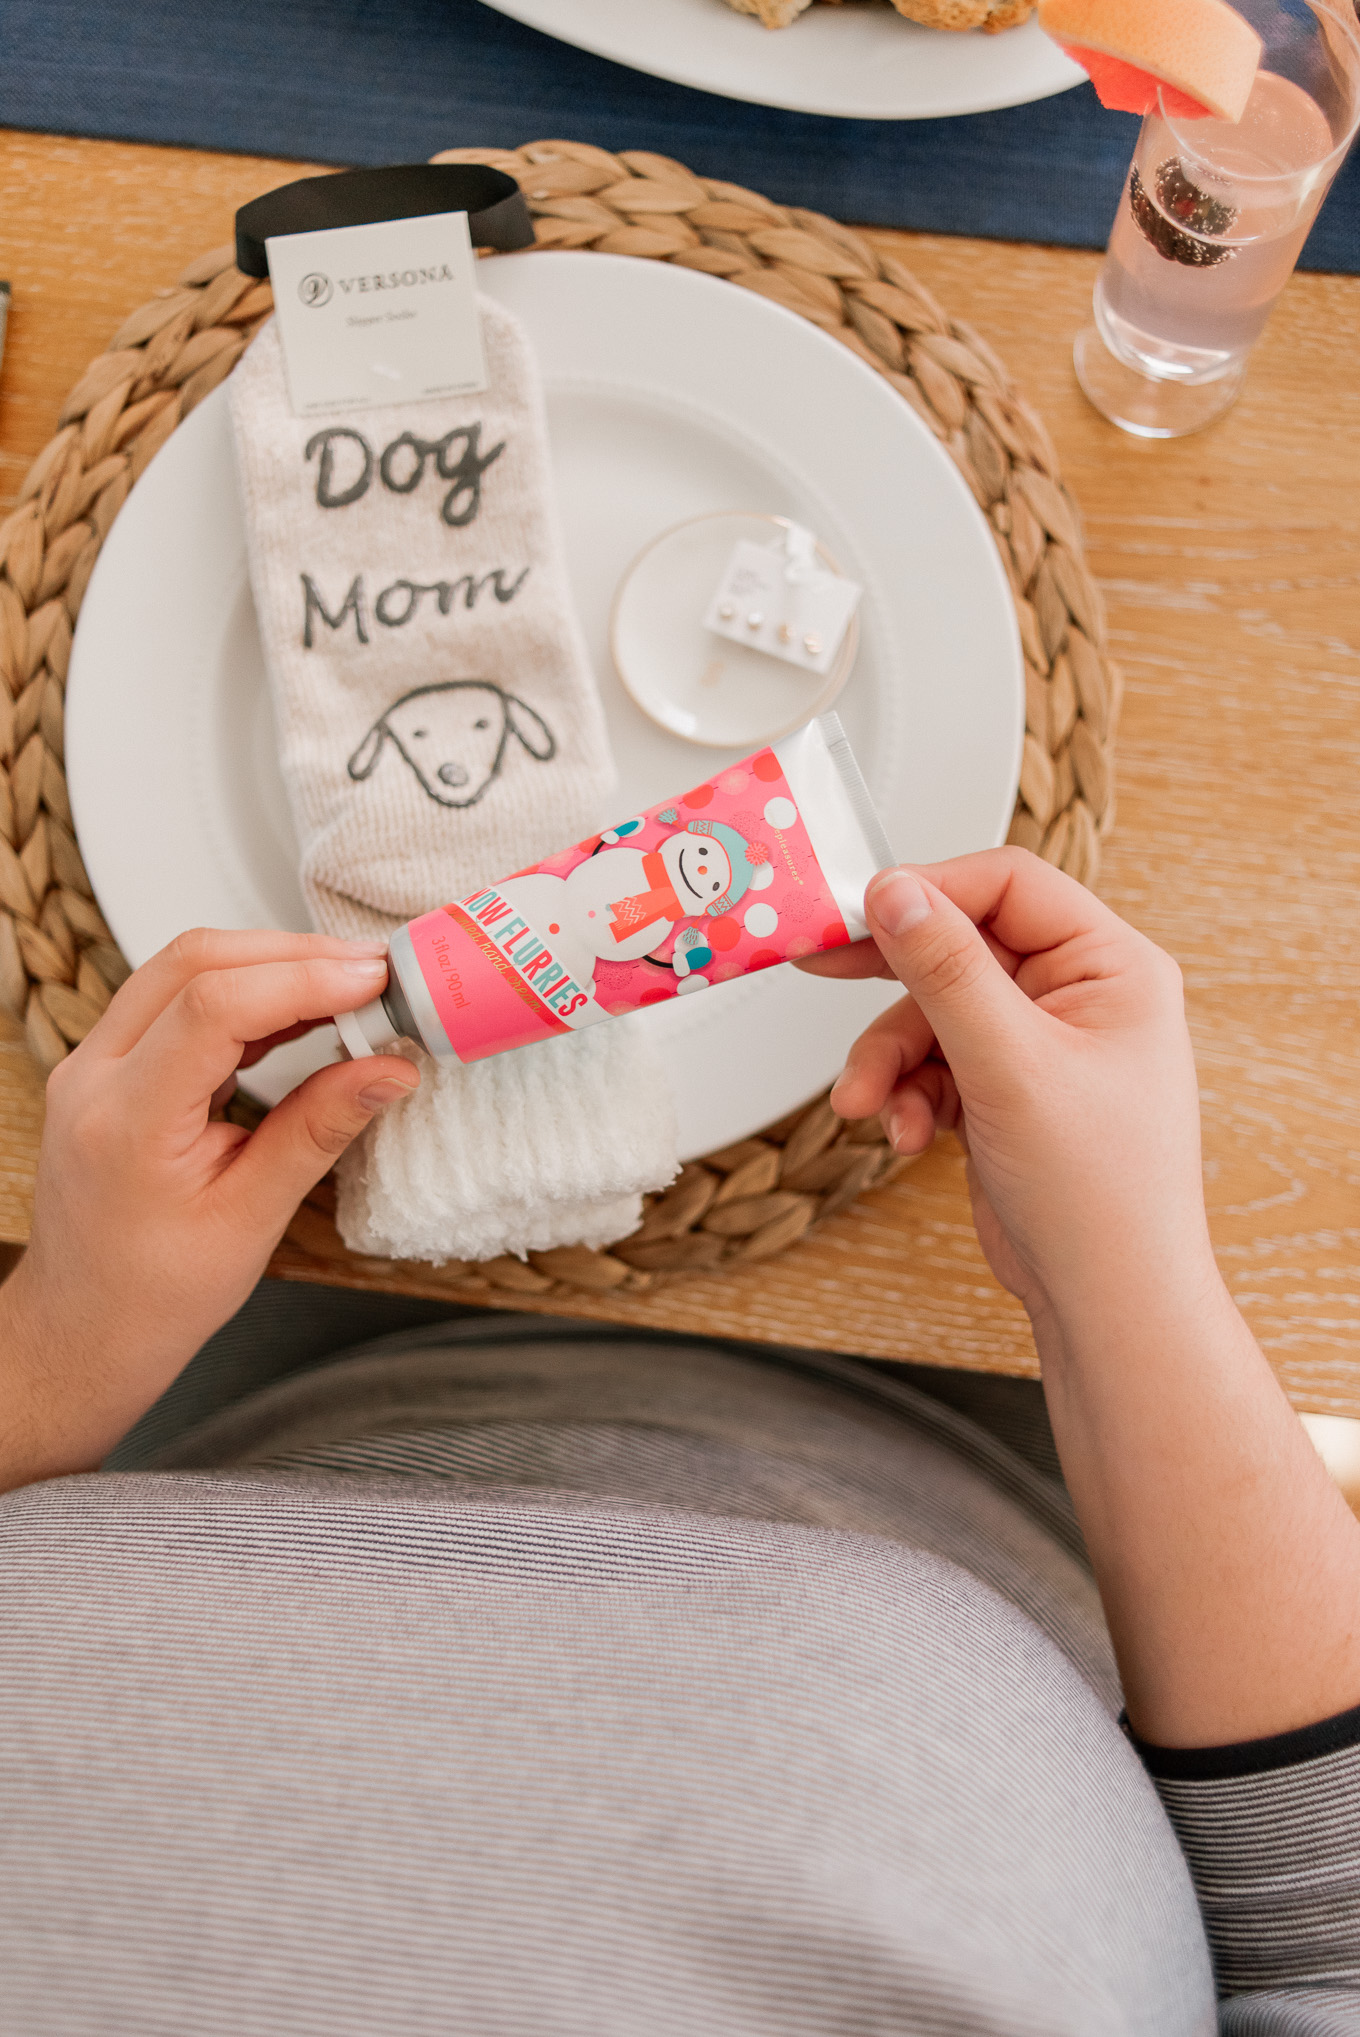 Dog Mom Socks, Dog Mom Slipper Socks | Louella Reese